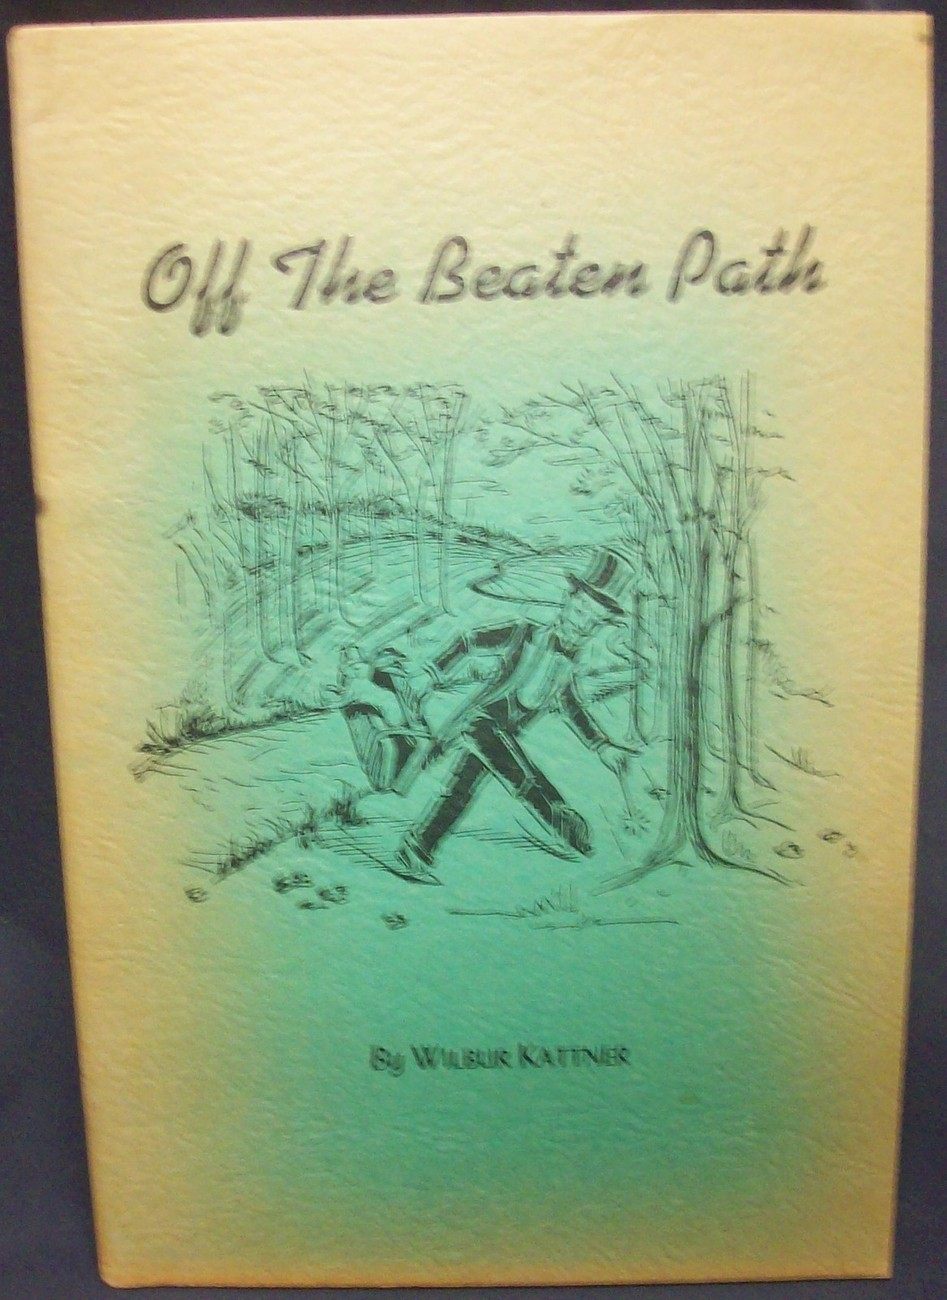 Primary image for Off The Beaten Path by Kattner Wilbur